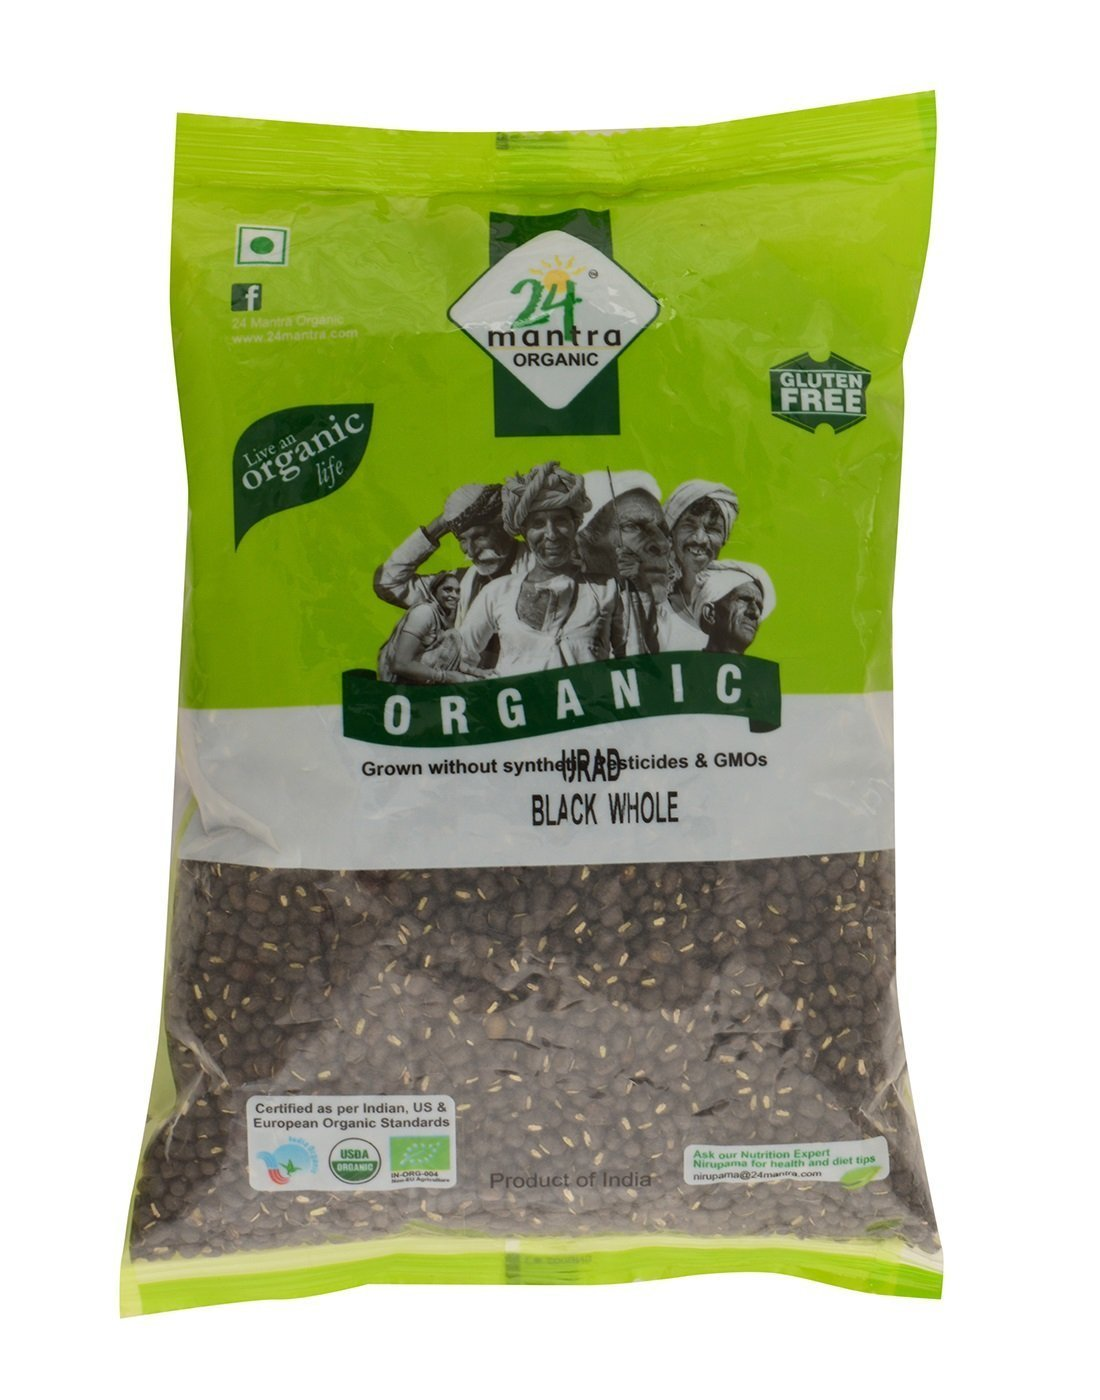 Amazon Com Organic Urad Dal Black Whole 4 Pounds Black Matpe Beans Or Black Lentils Usda Certified Organic 24 Mantra Organic Grocery Gourmet Food